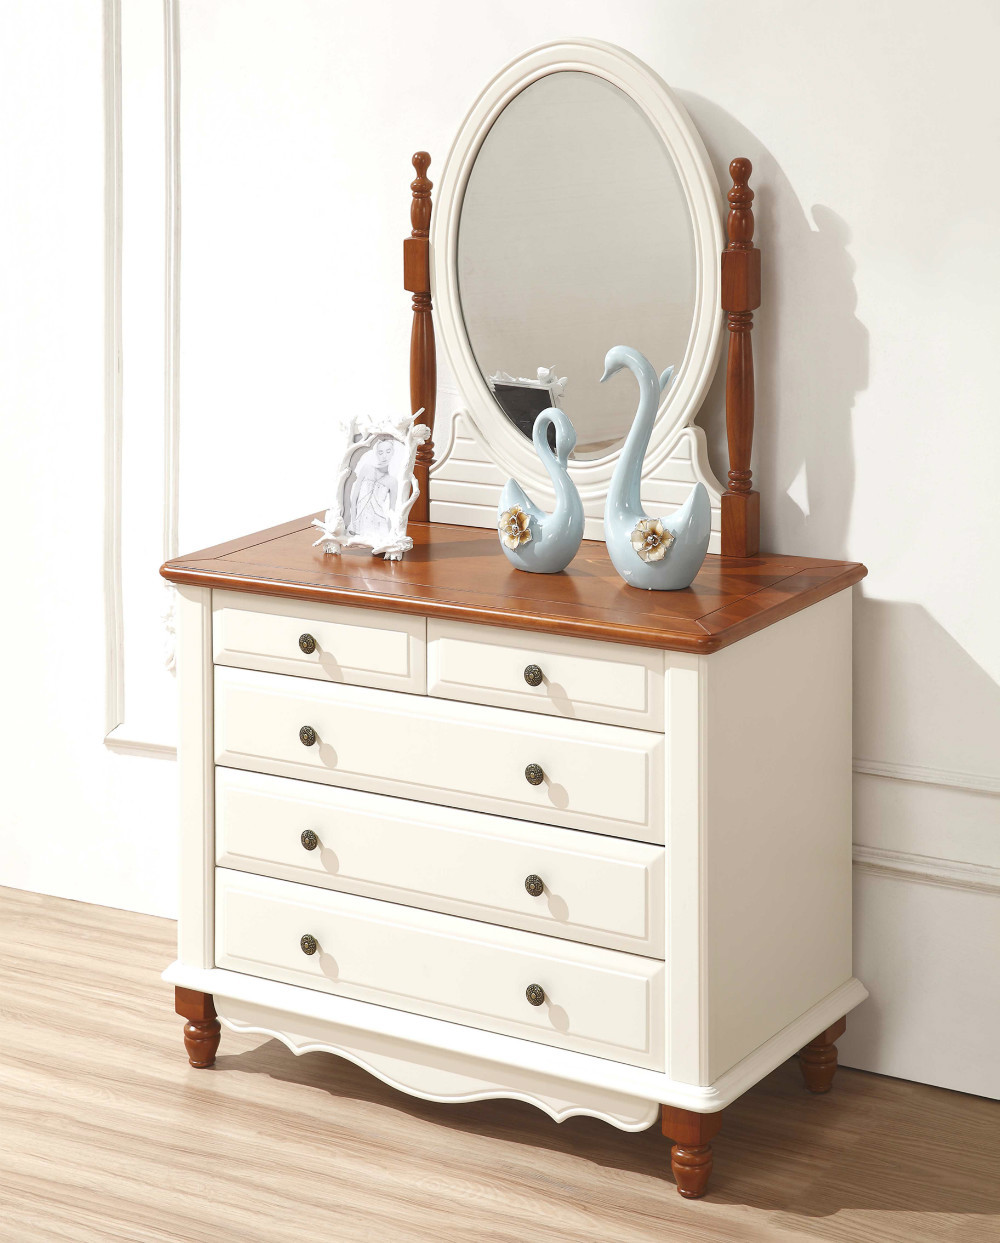 Buy 1 Bed 2 Bedside Dresser Mirror